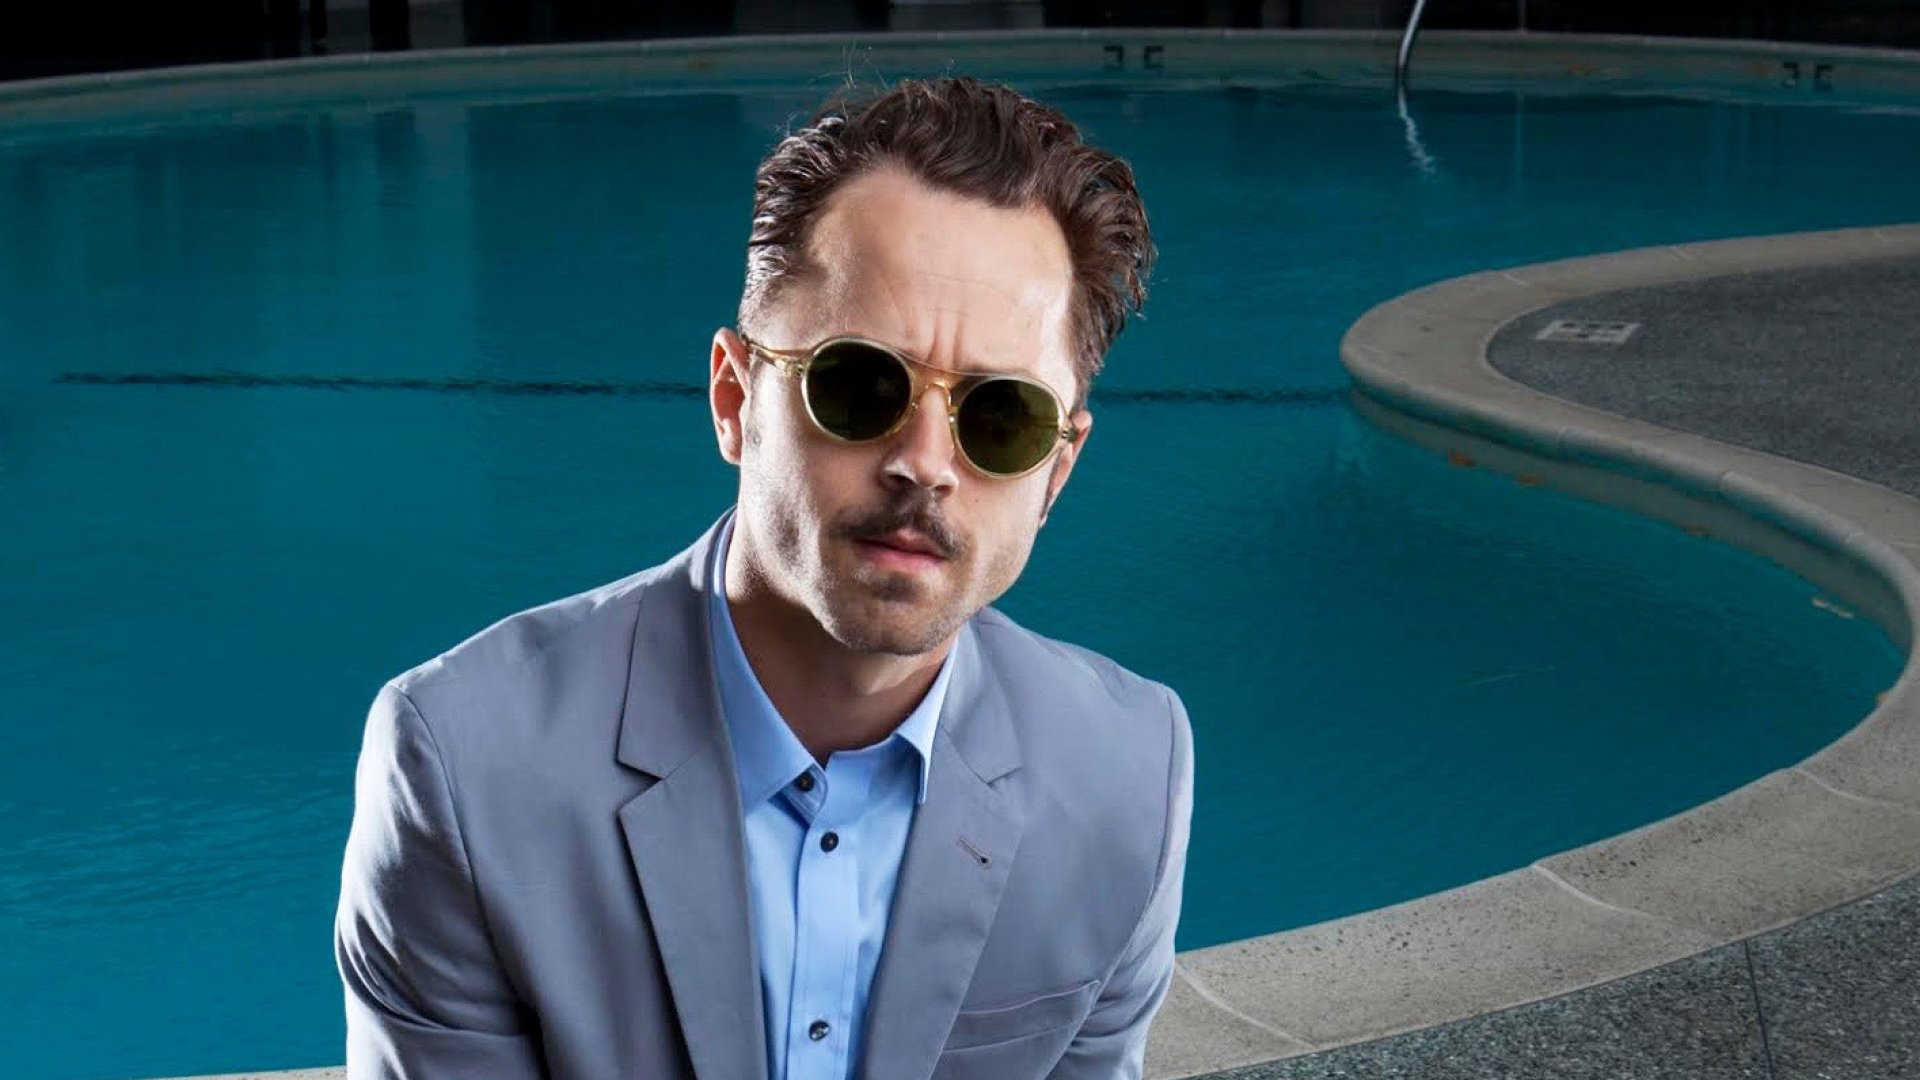 Actor Giovanni Ribisi photographed by Tim Cadiente for his own Barton Perreira sunglasses collection.